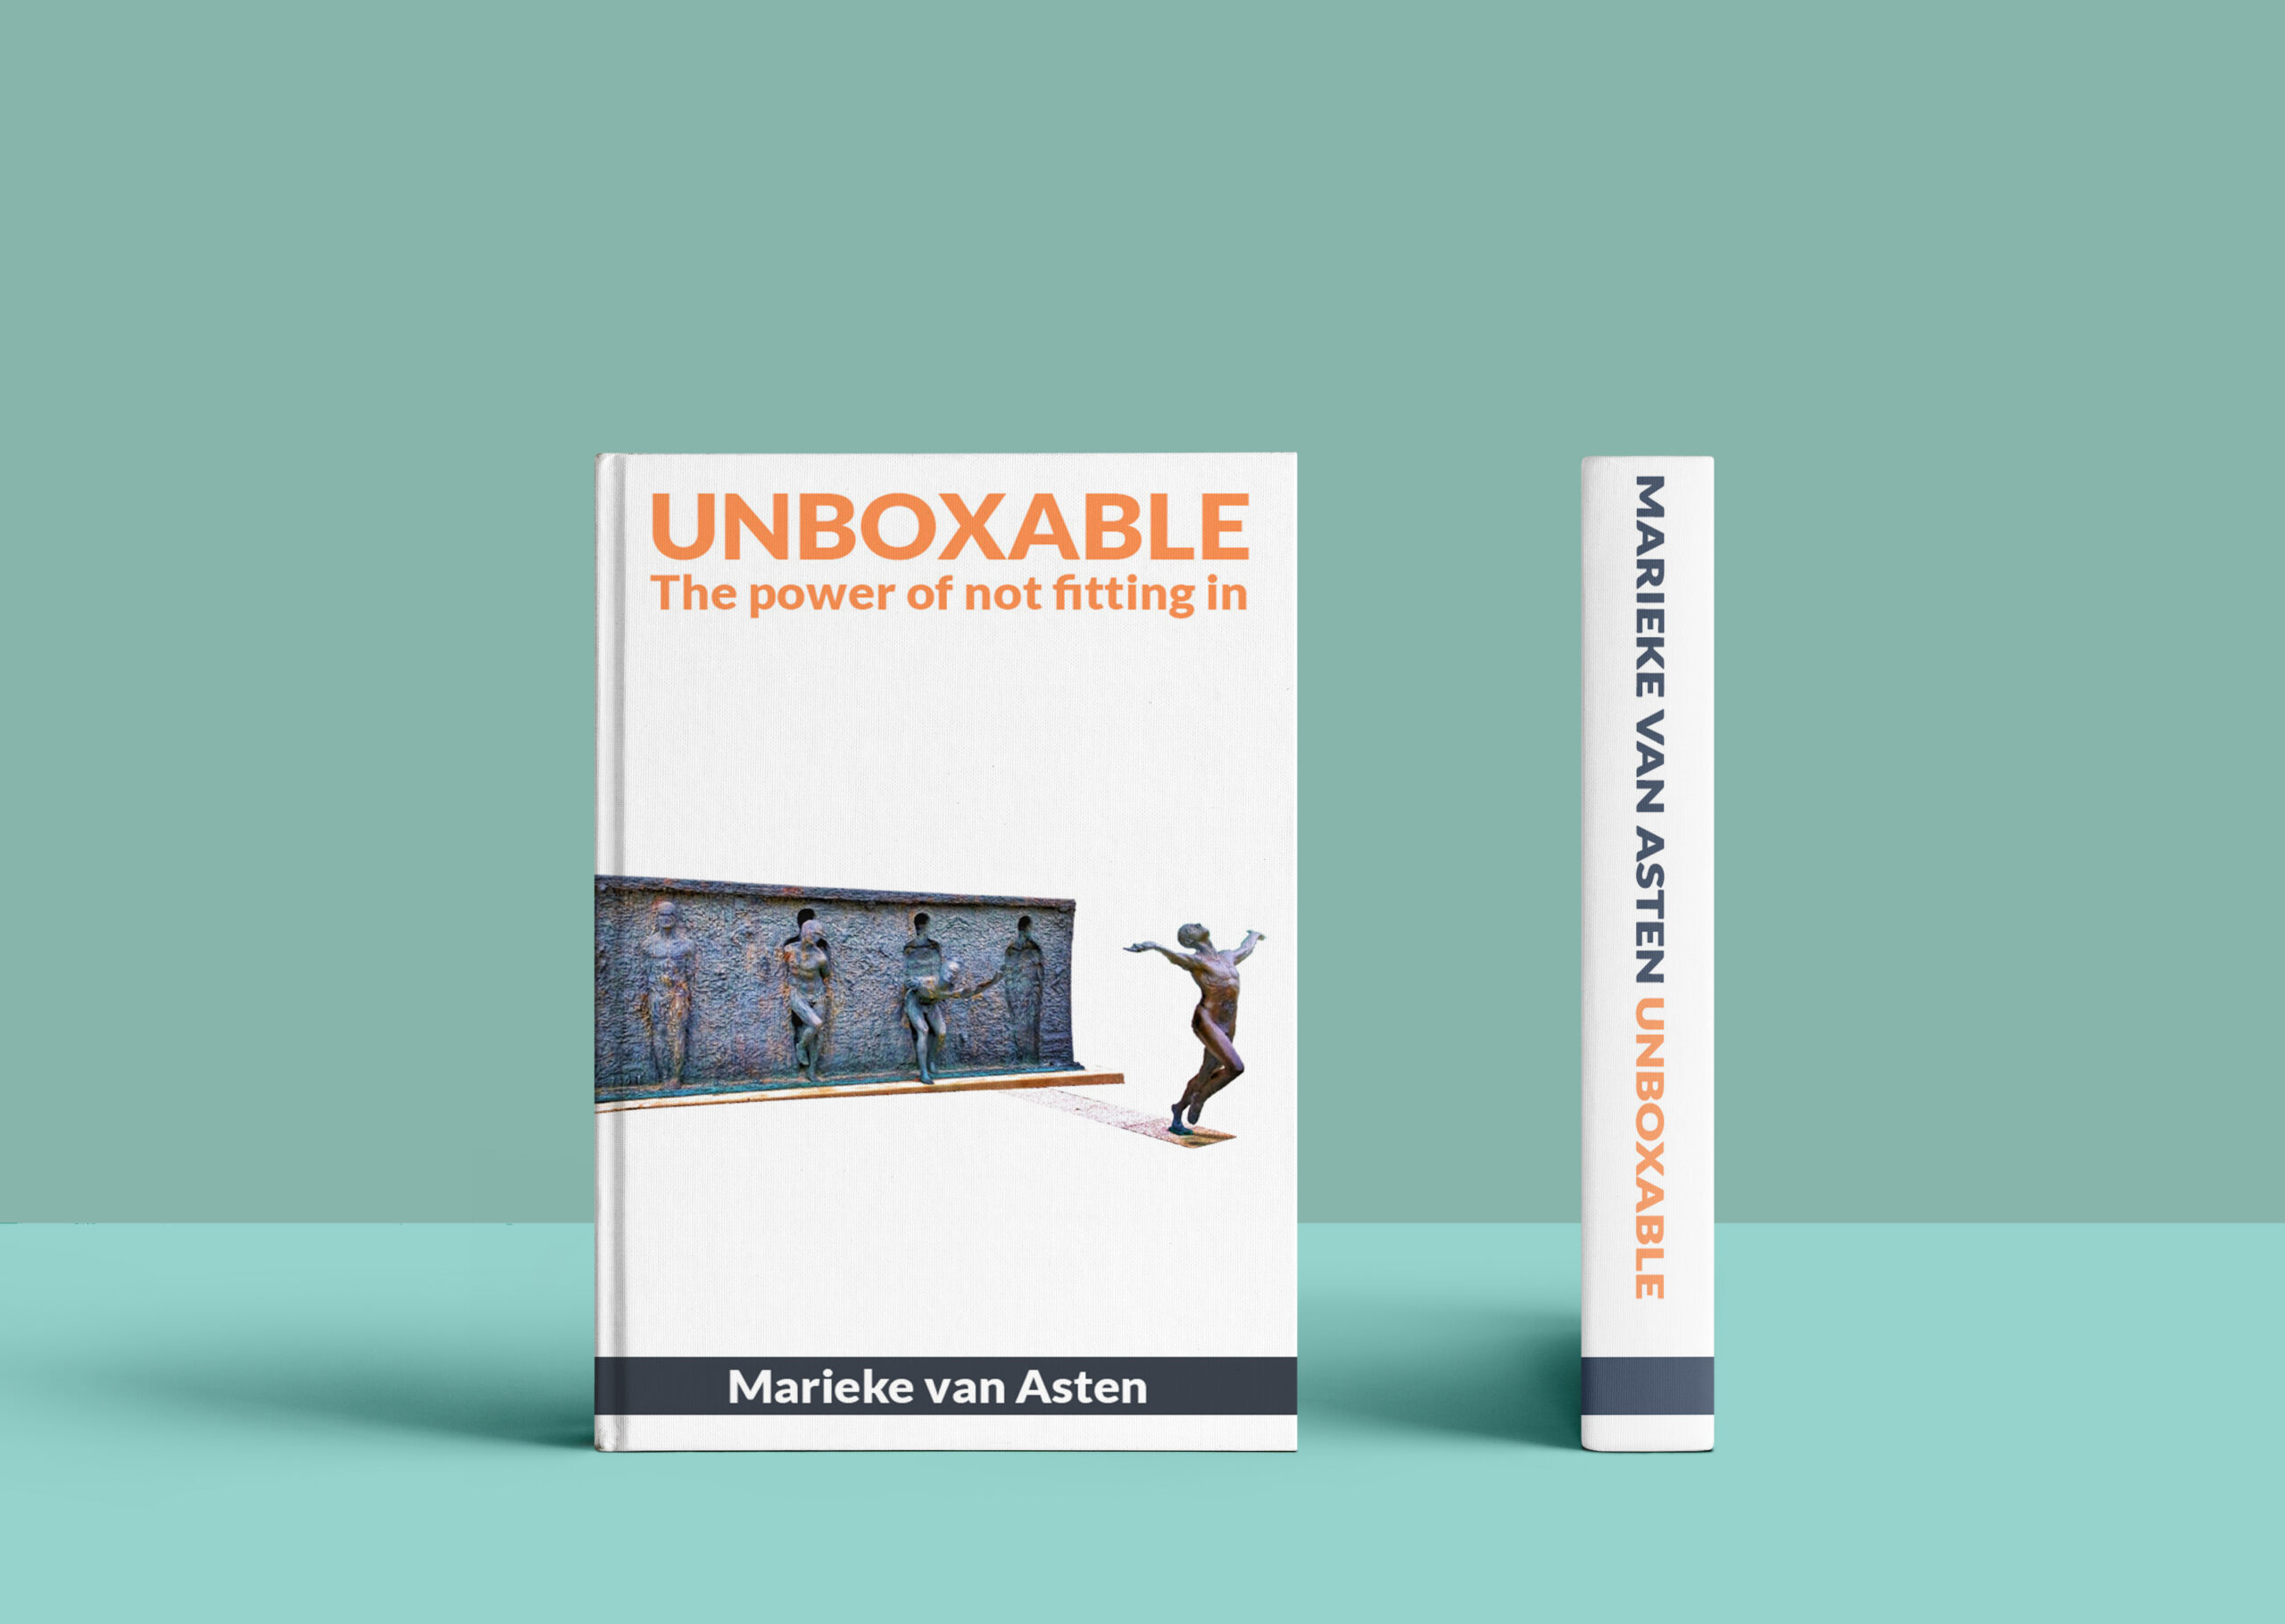 Unboxable the book.